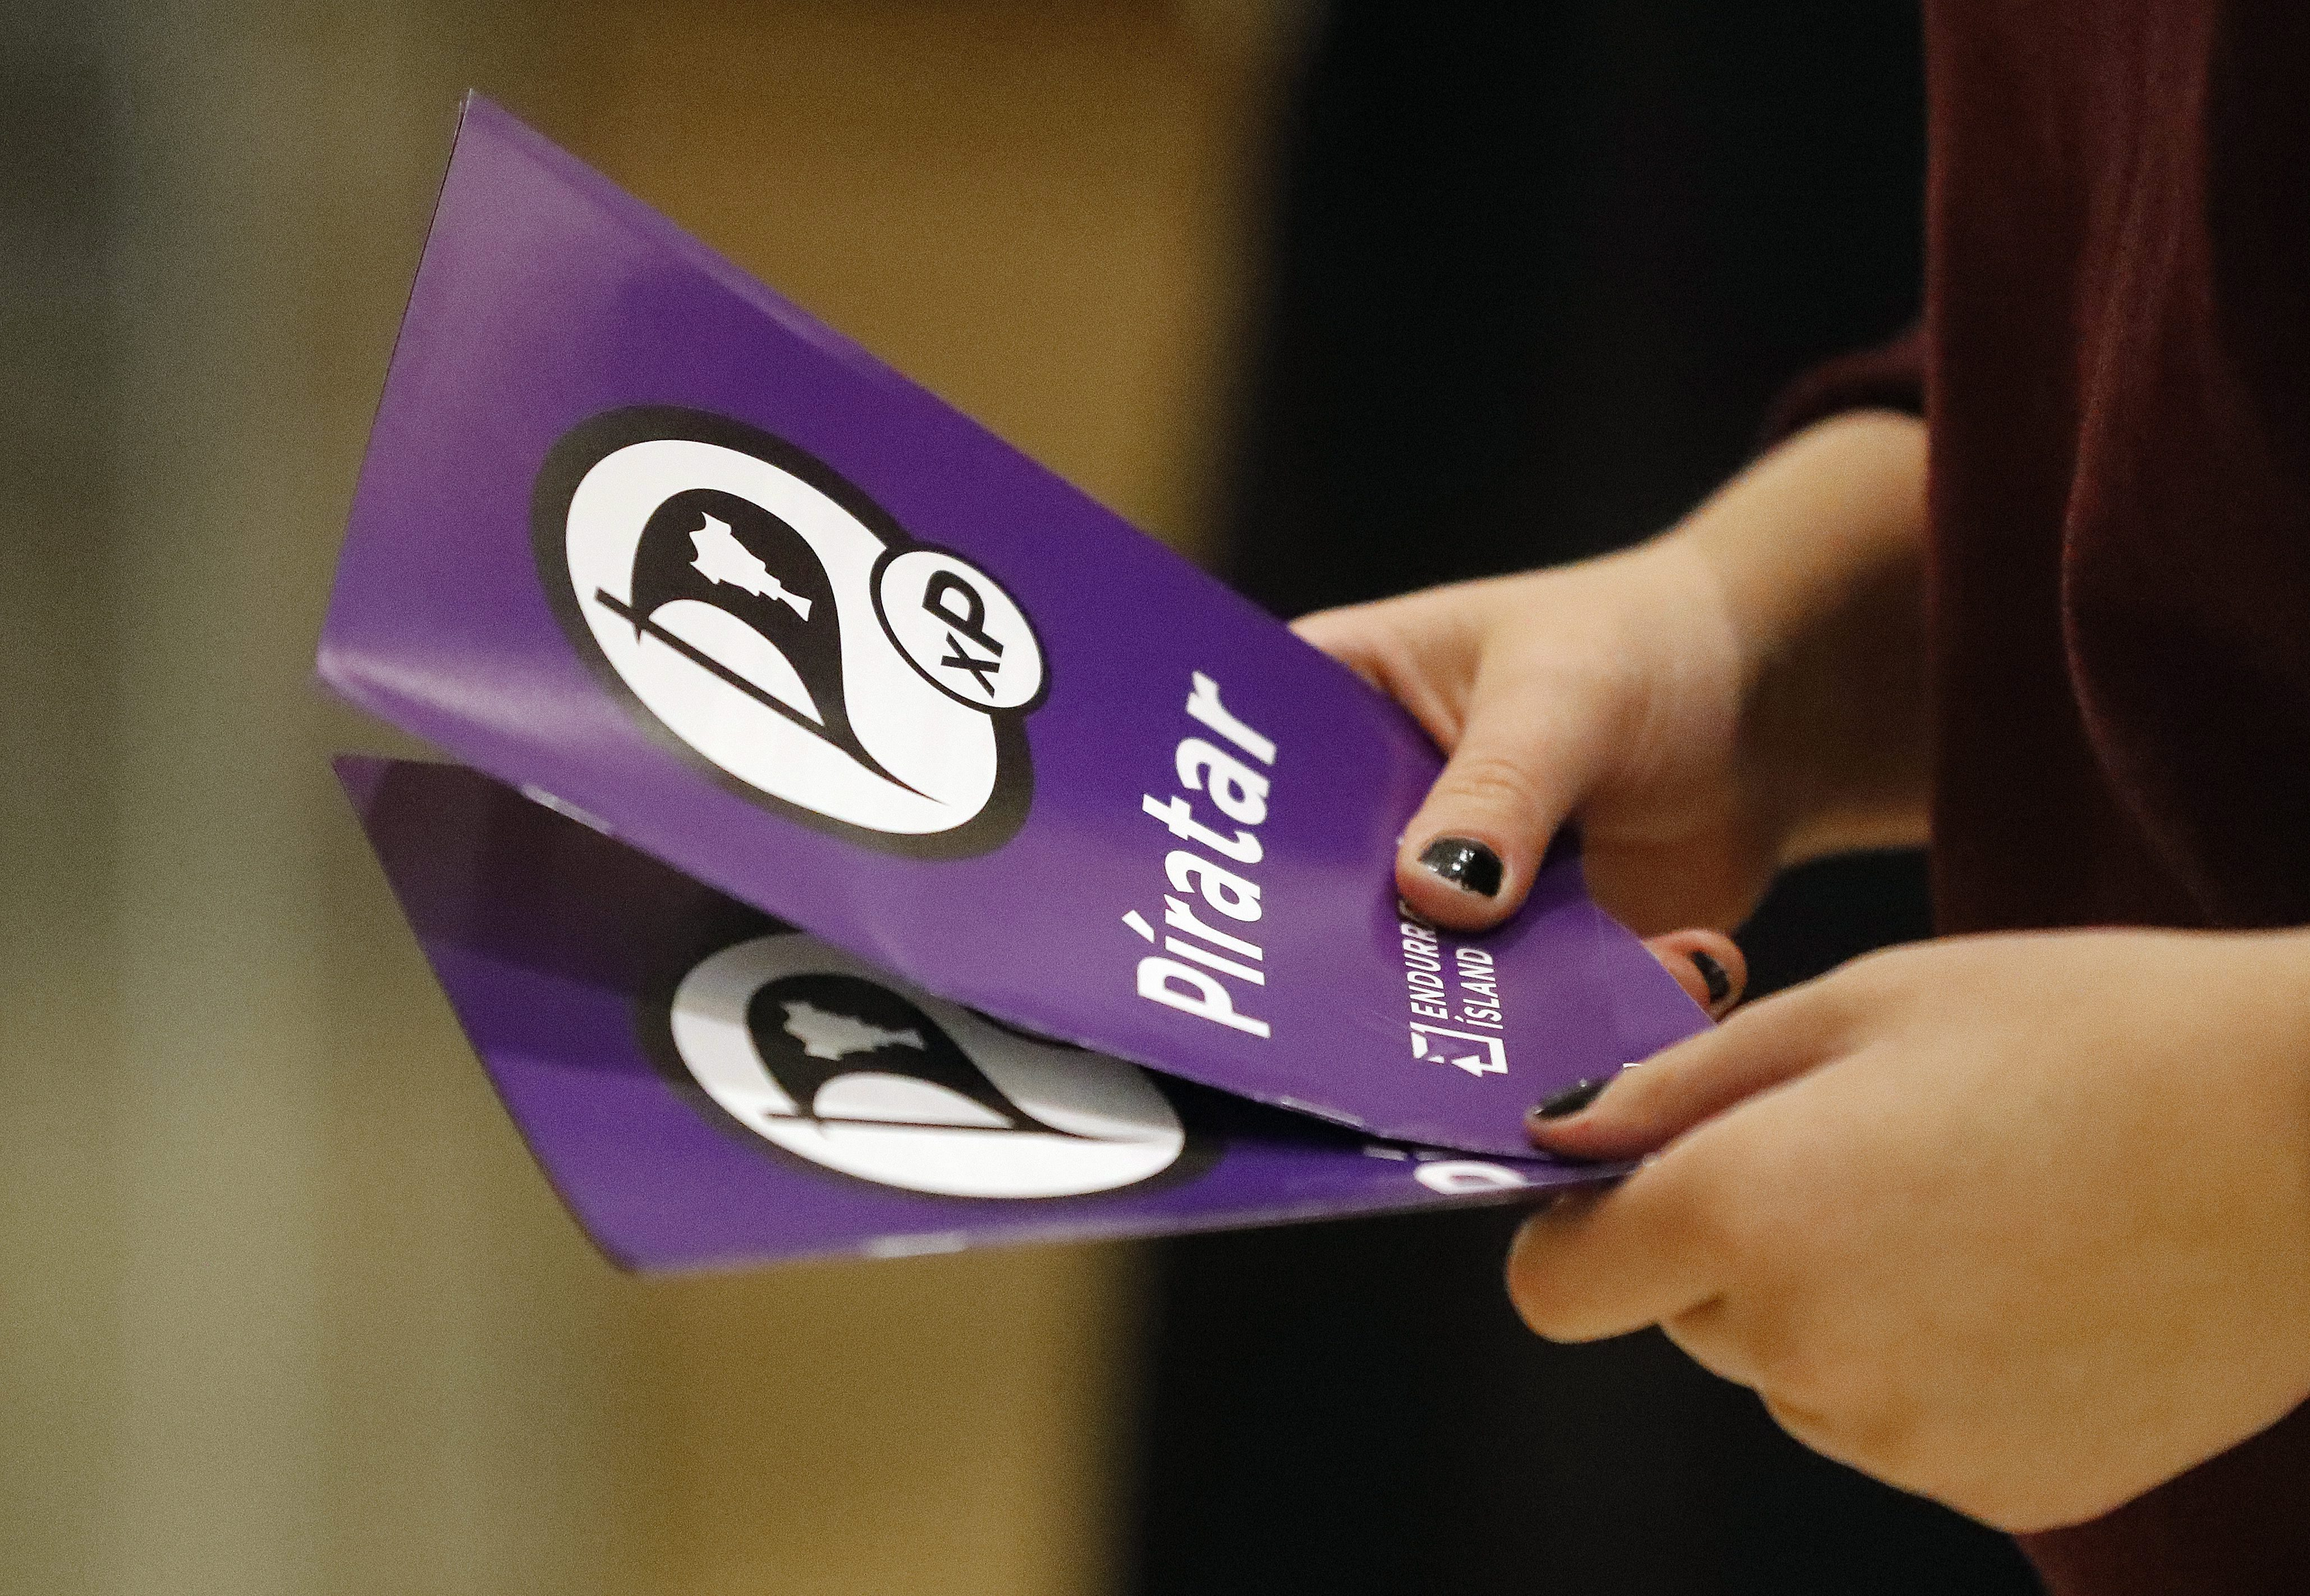 Iceland's Pirate Party Could Make Major Gains In Parliament